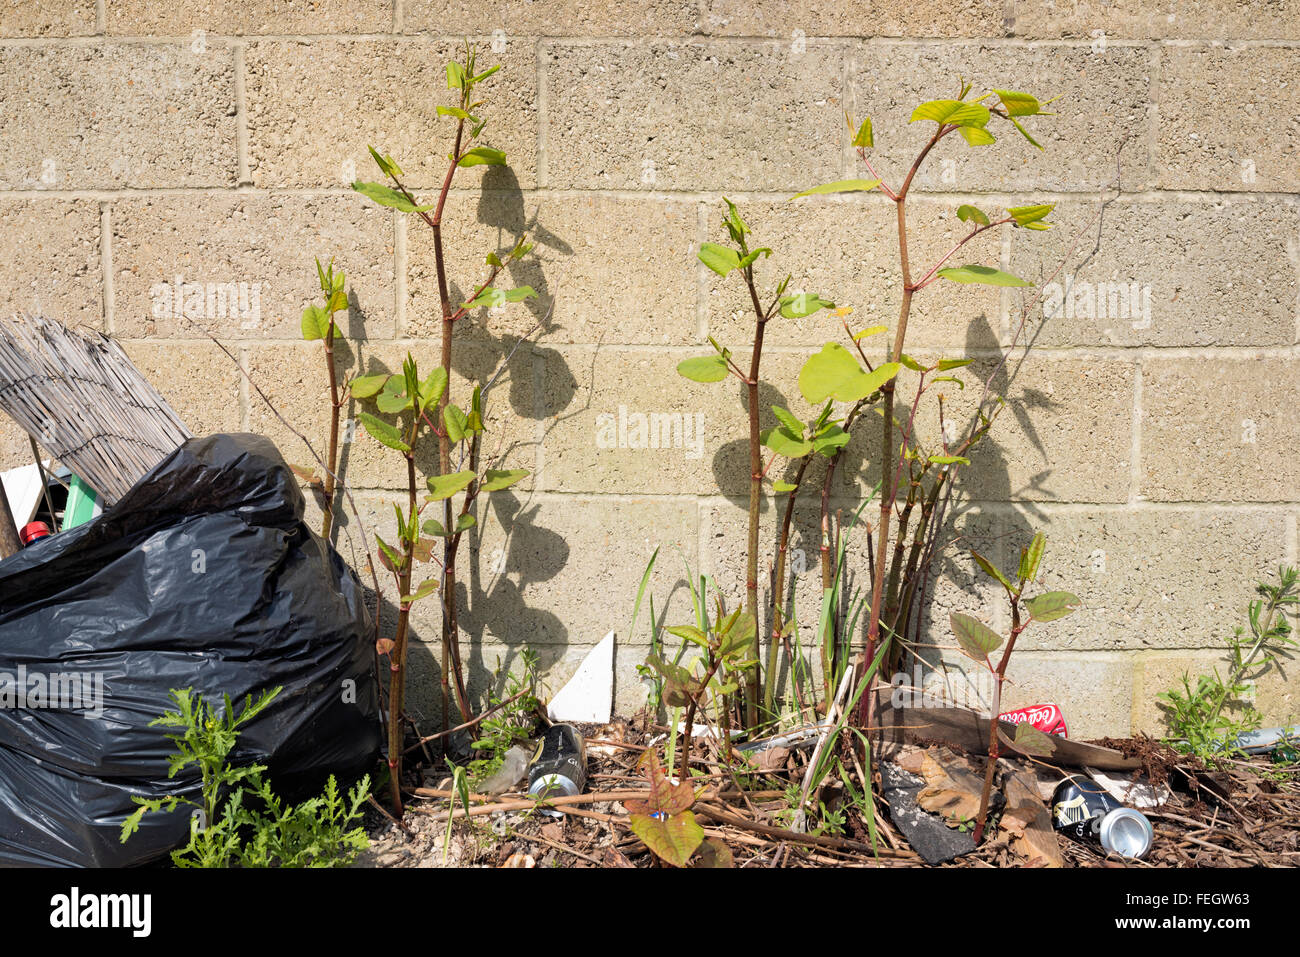 Japanese knotweed: Fallopia japonica,  Reynoutria japonica - Stock Image